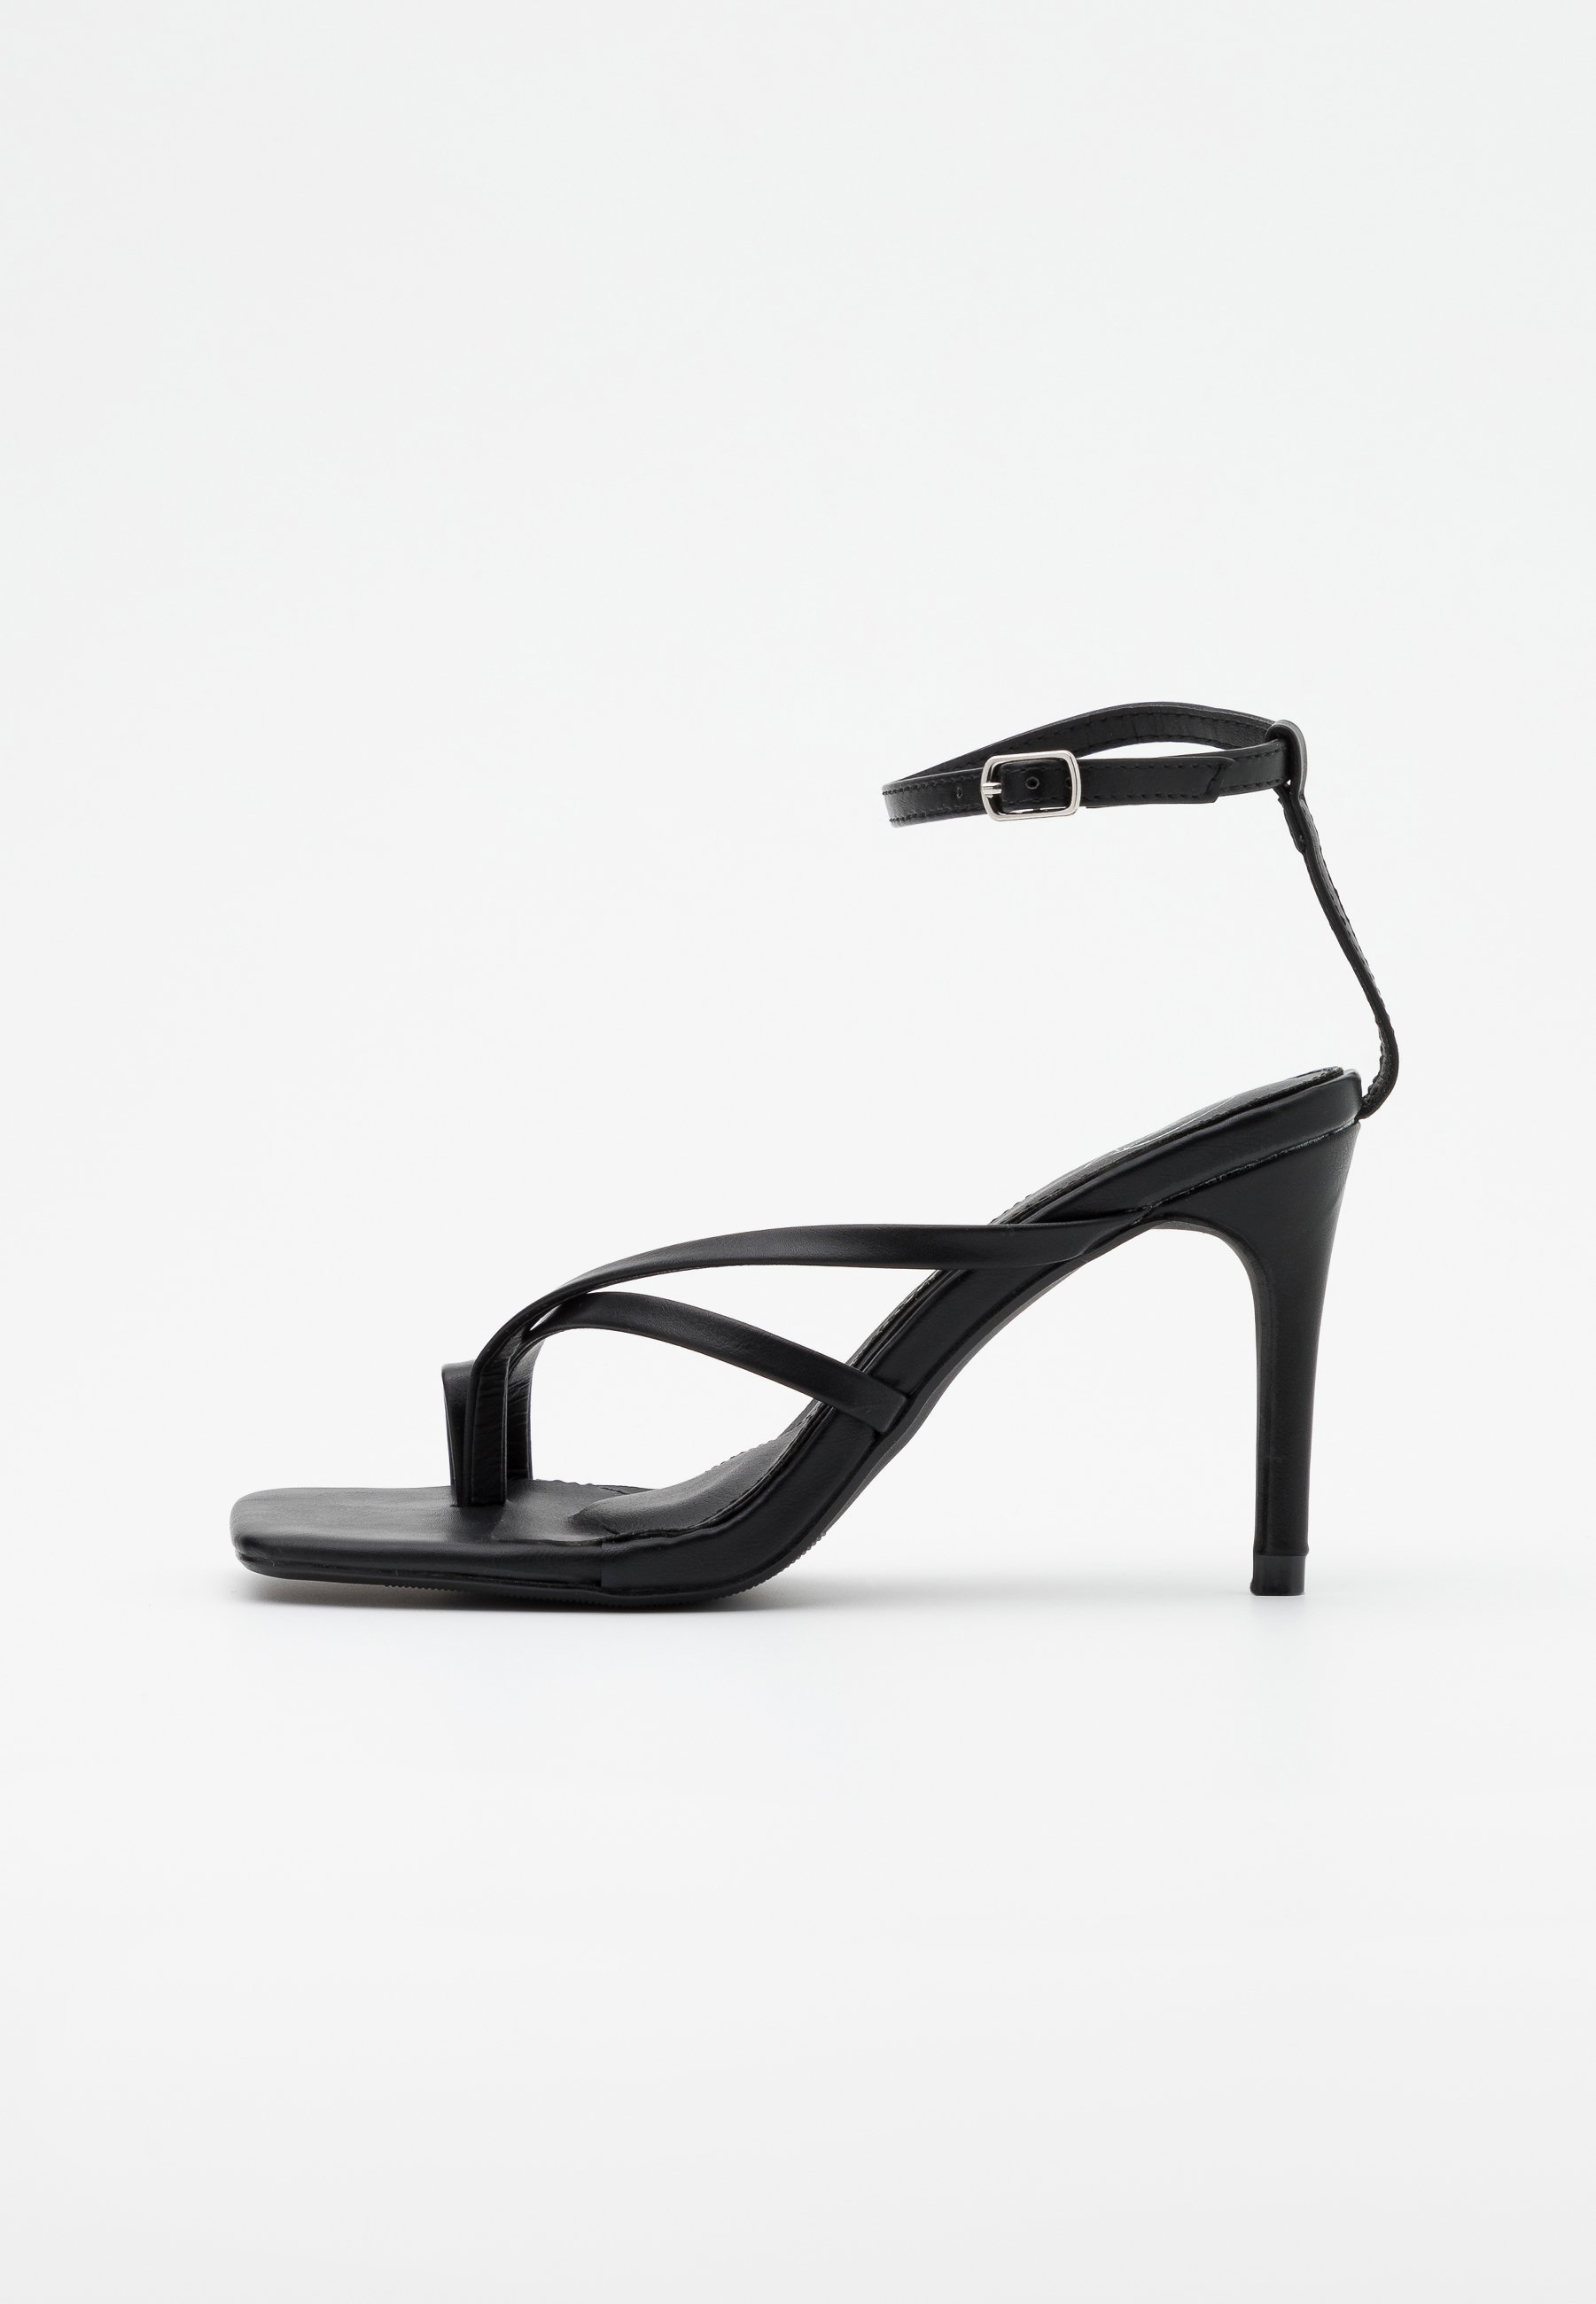 toe post heeled sandals uk